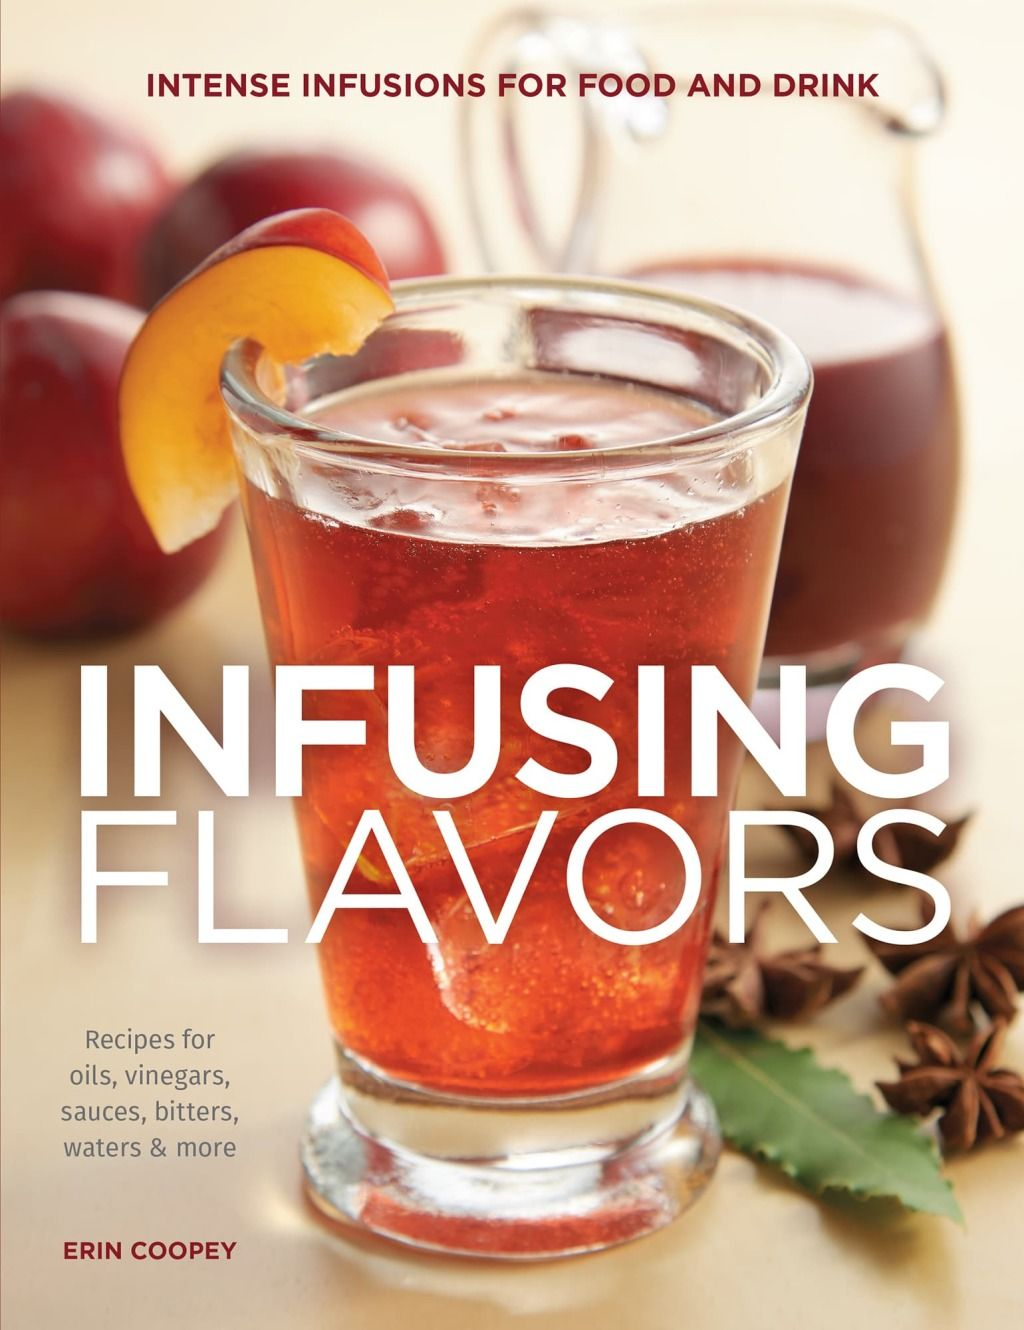 Infusing Flavors (eBook) Food drink, Food, Food recipes